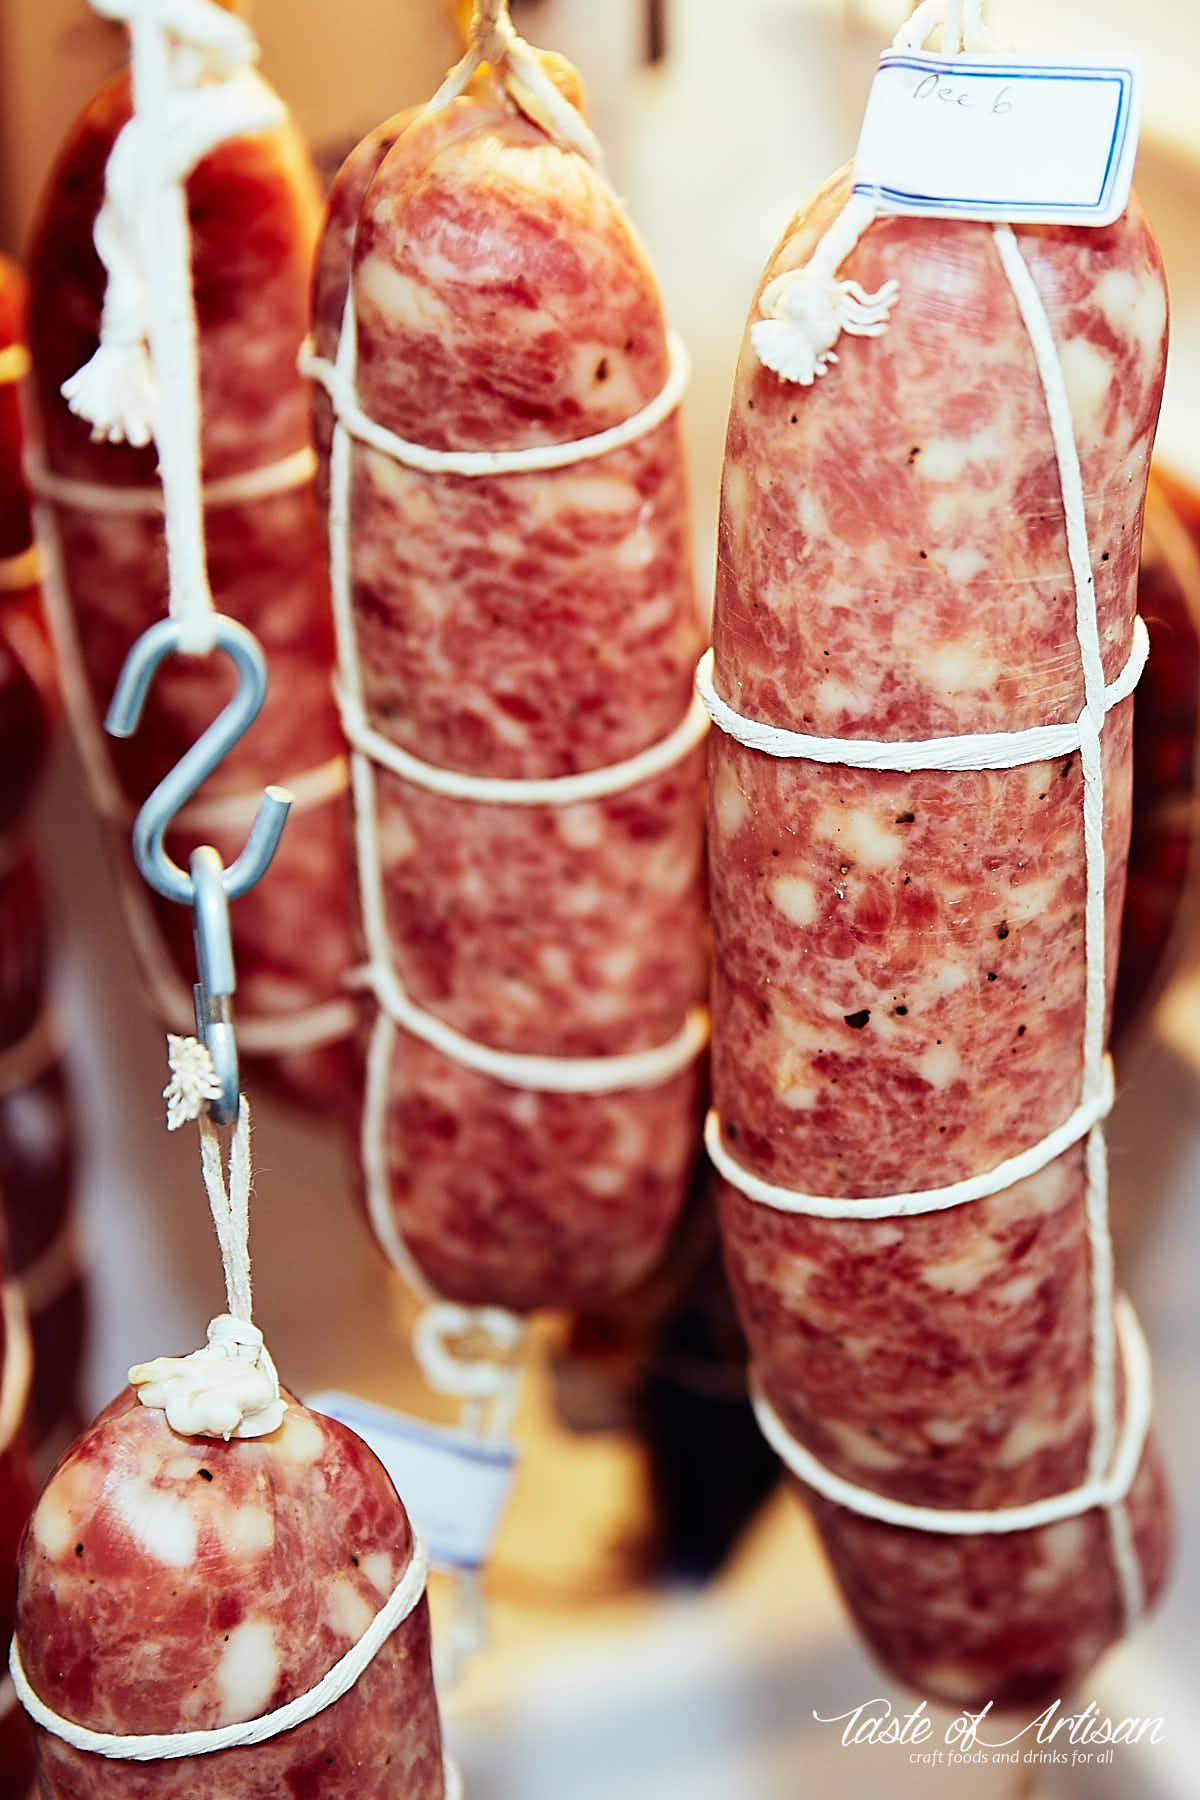 Soppressata, tied with twine, hanging in a meat curing fridge.